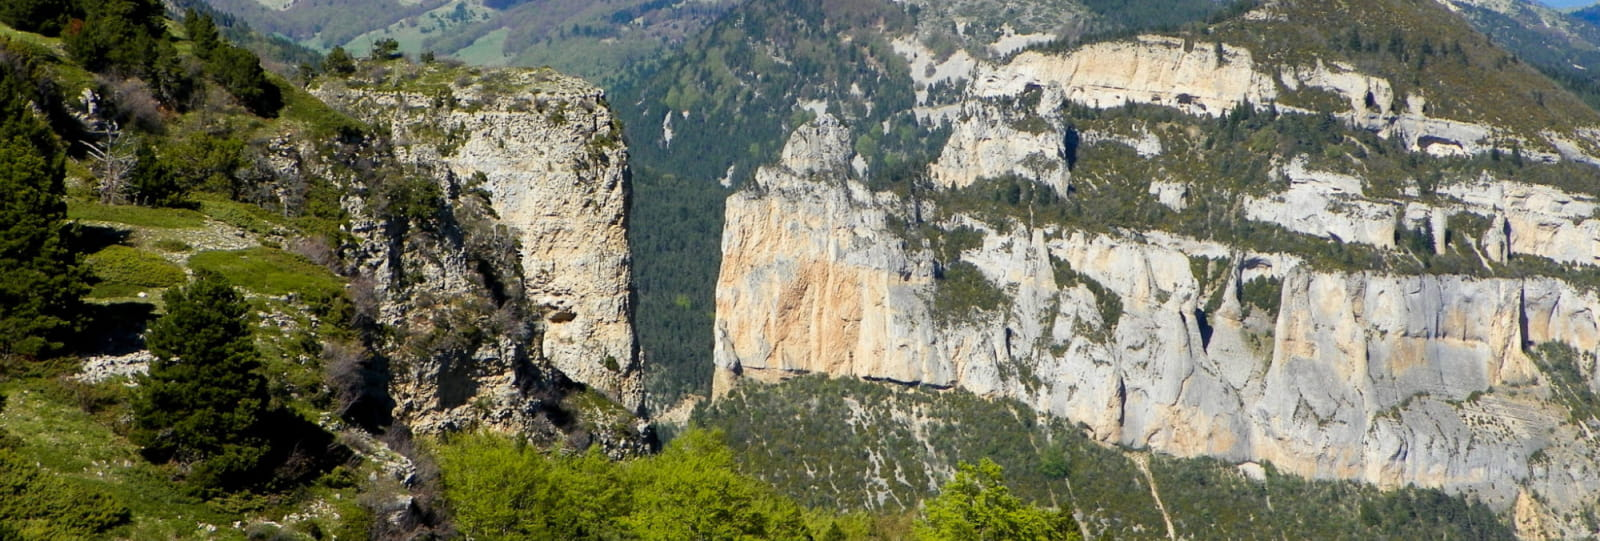 Week-end entre Vercors et Provence